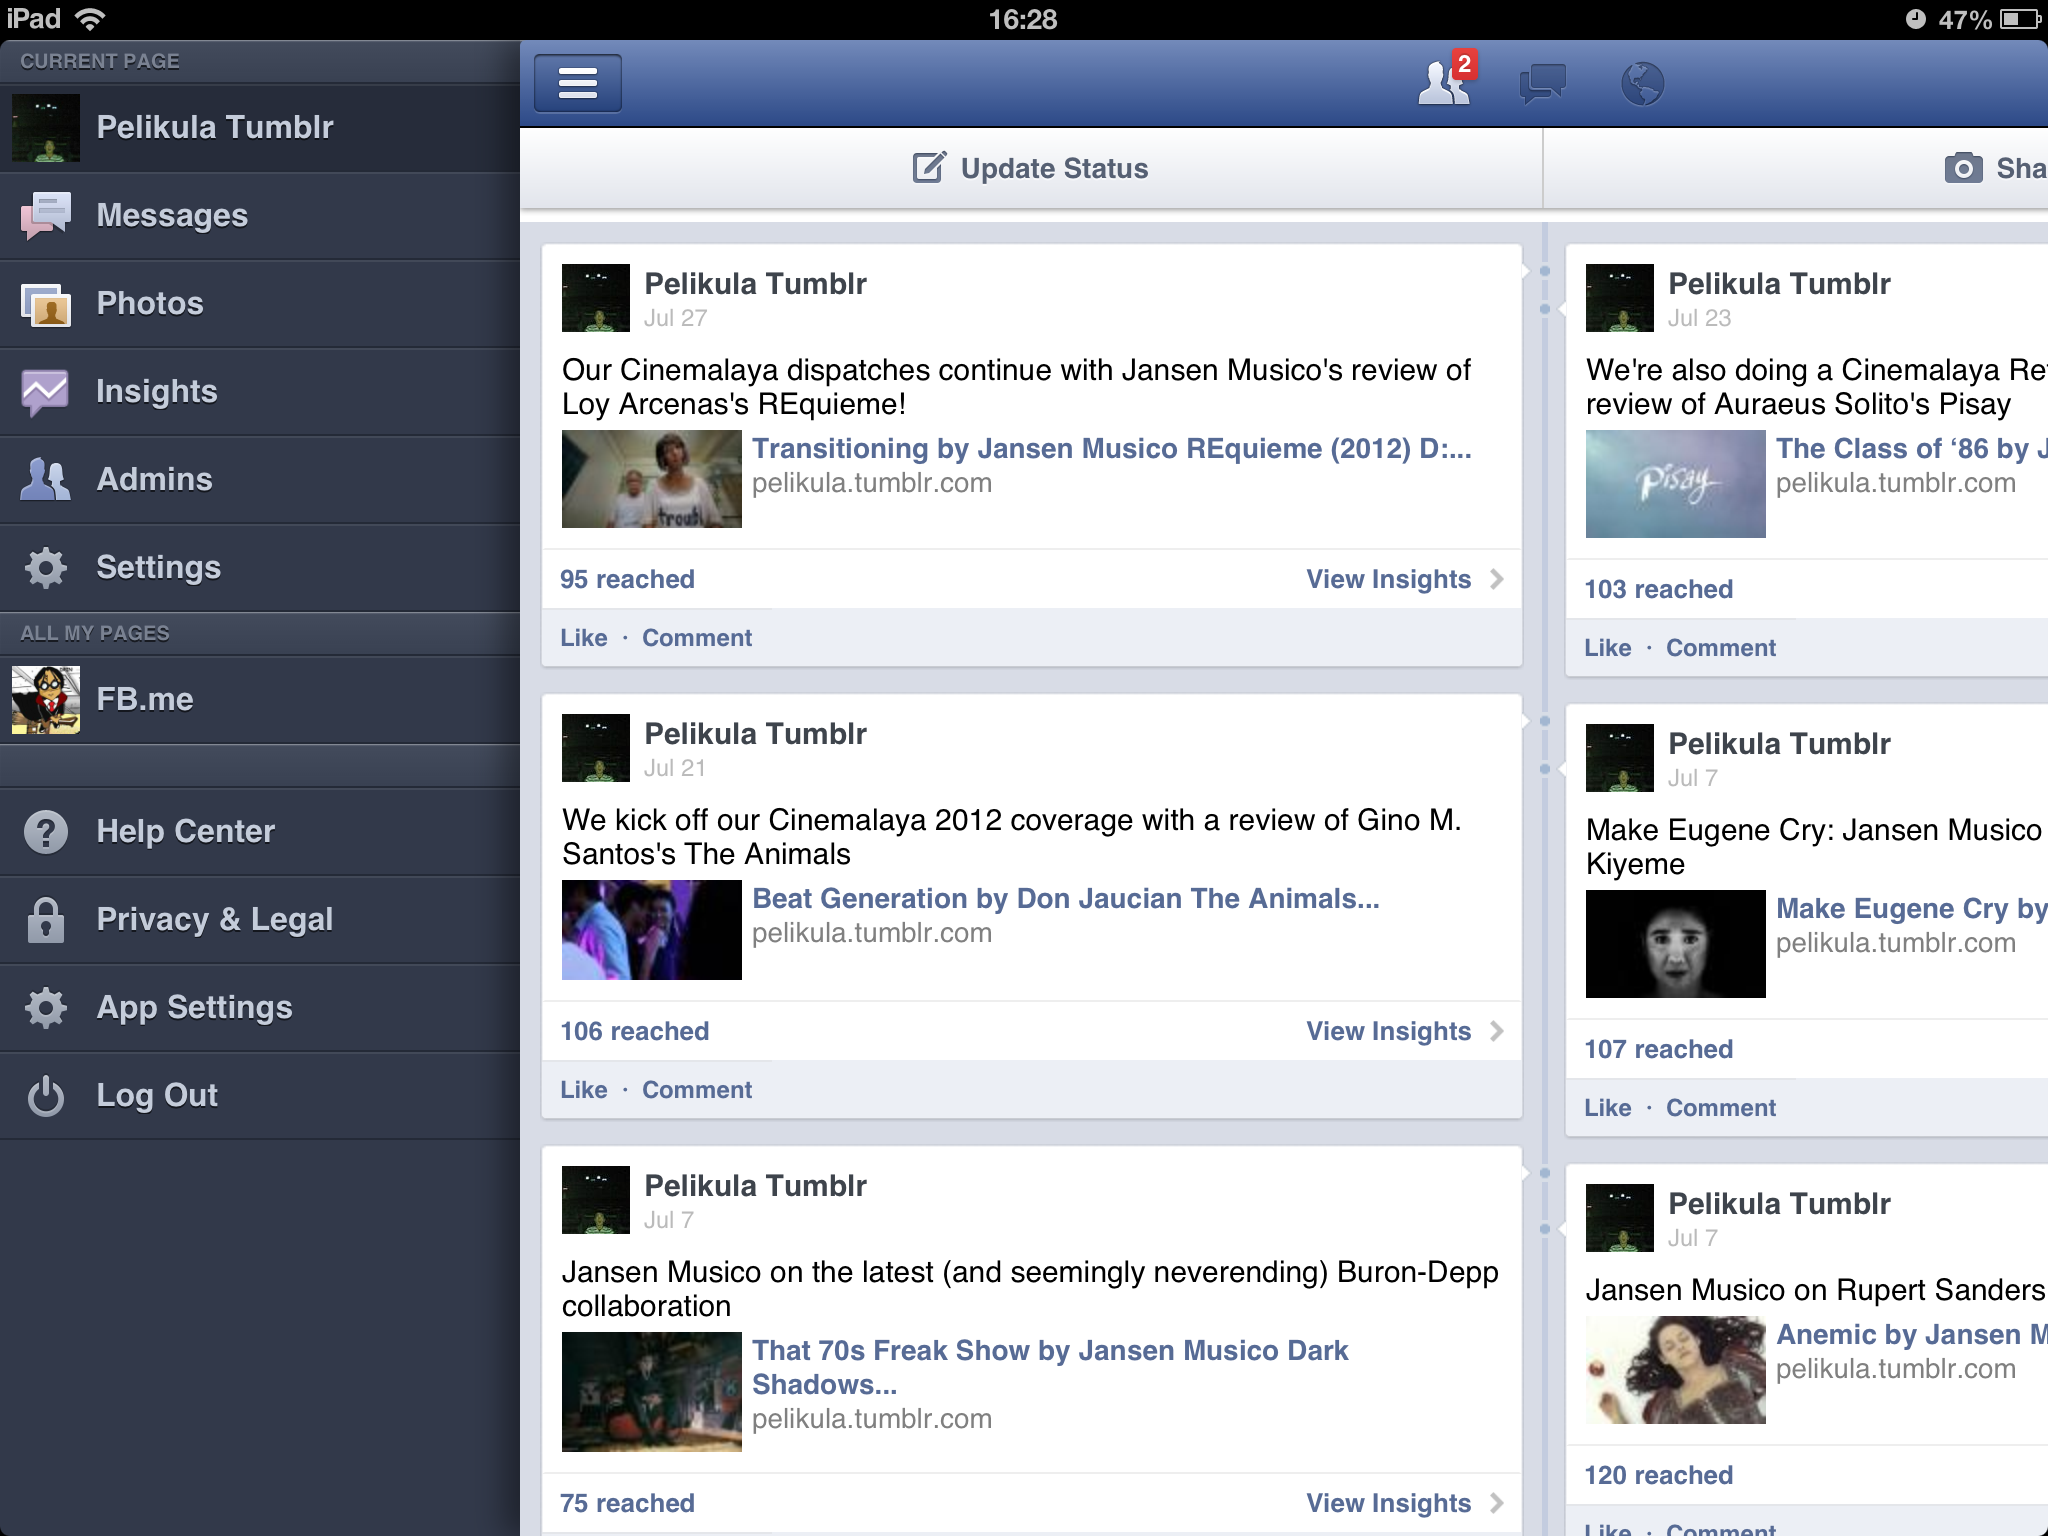 Facebook Pages Manager Gains iPad Landscape Support - Finally! - And